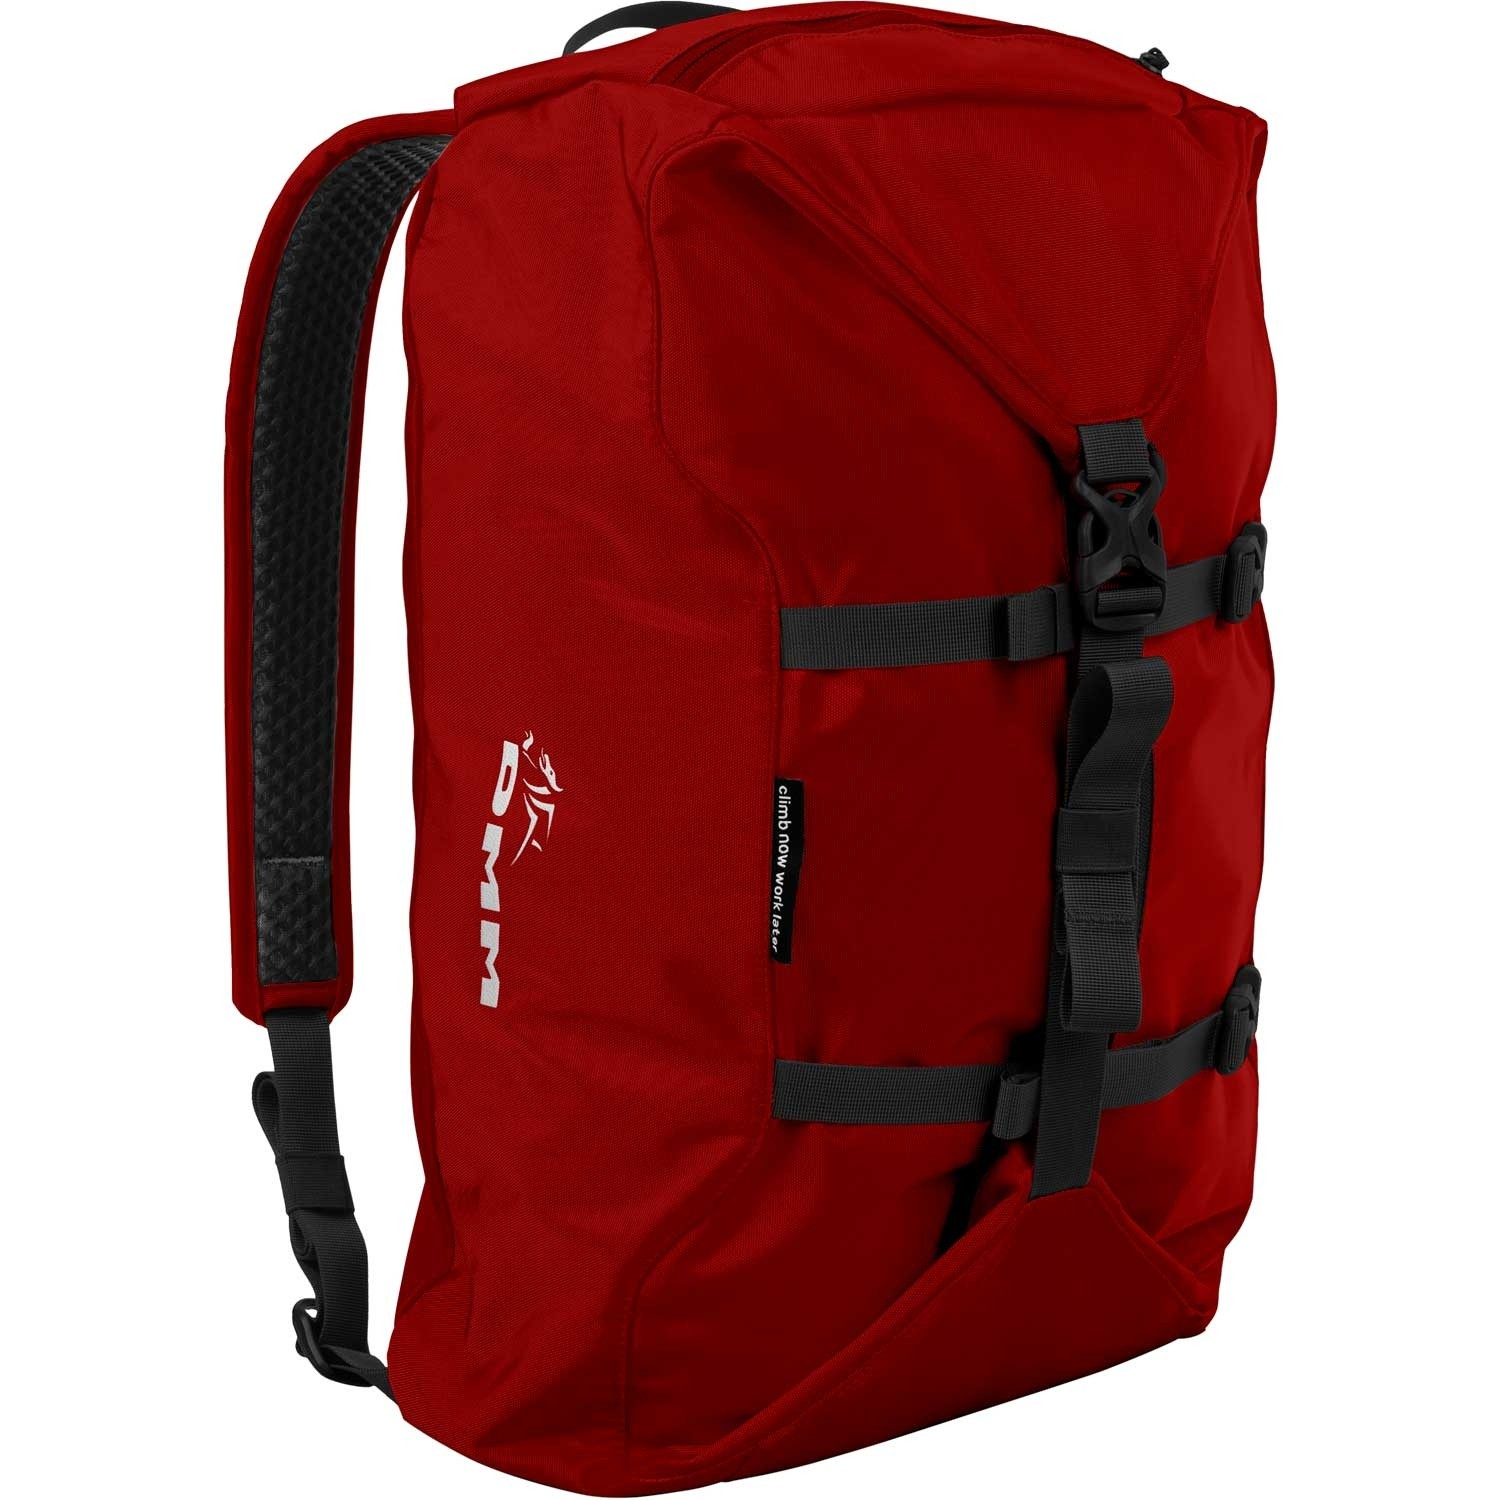 DMM Classic Rope Bag Red